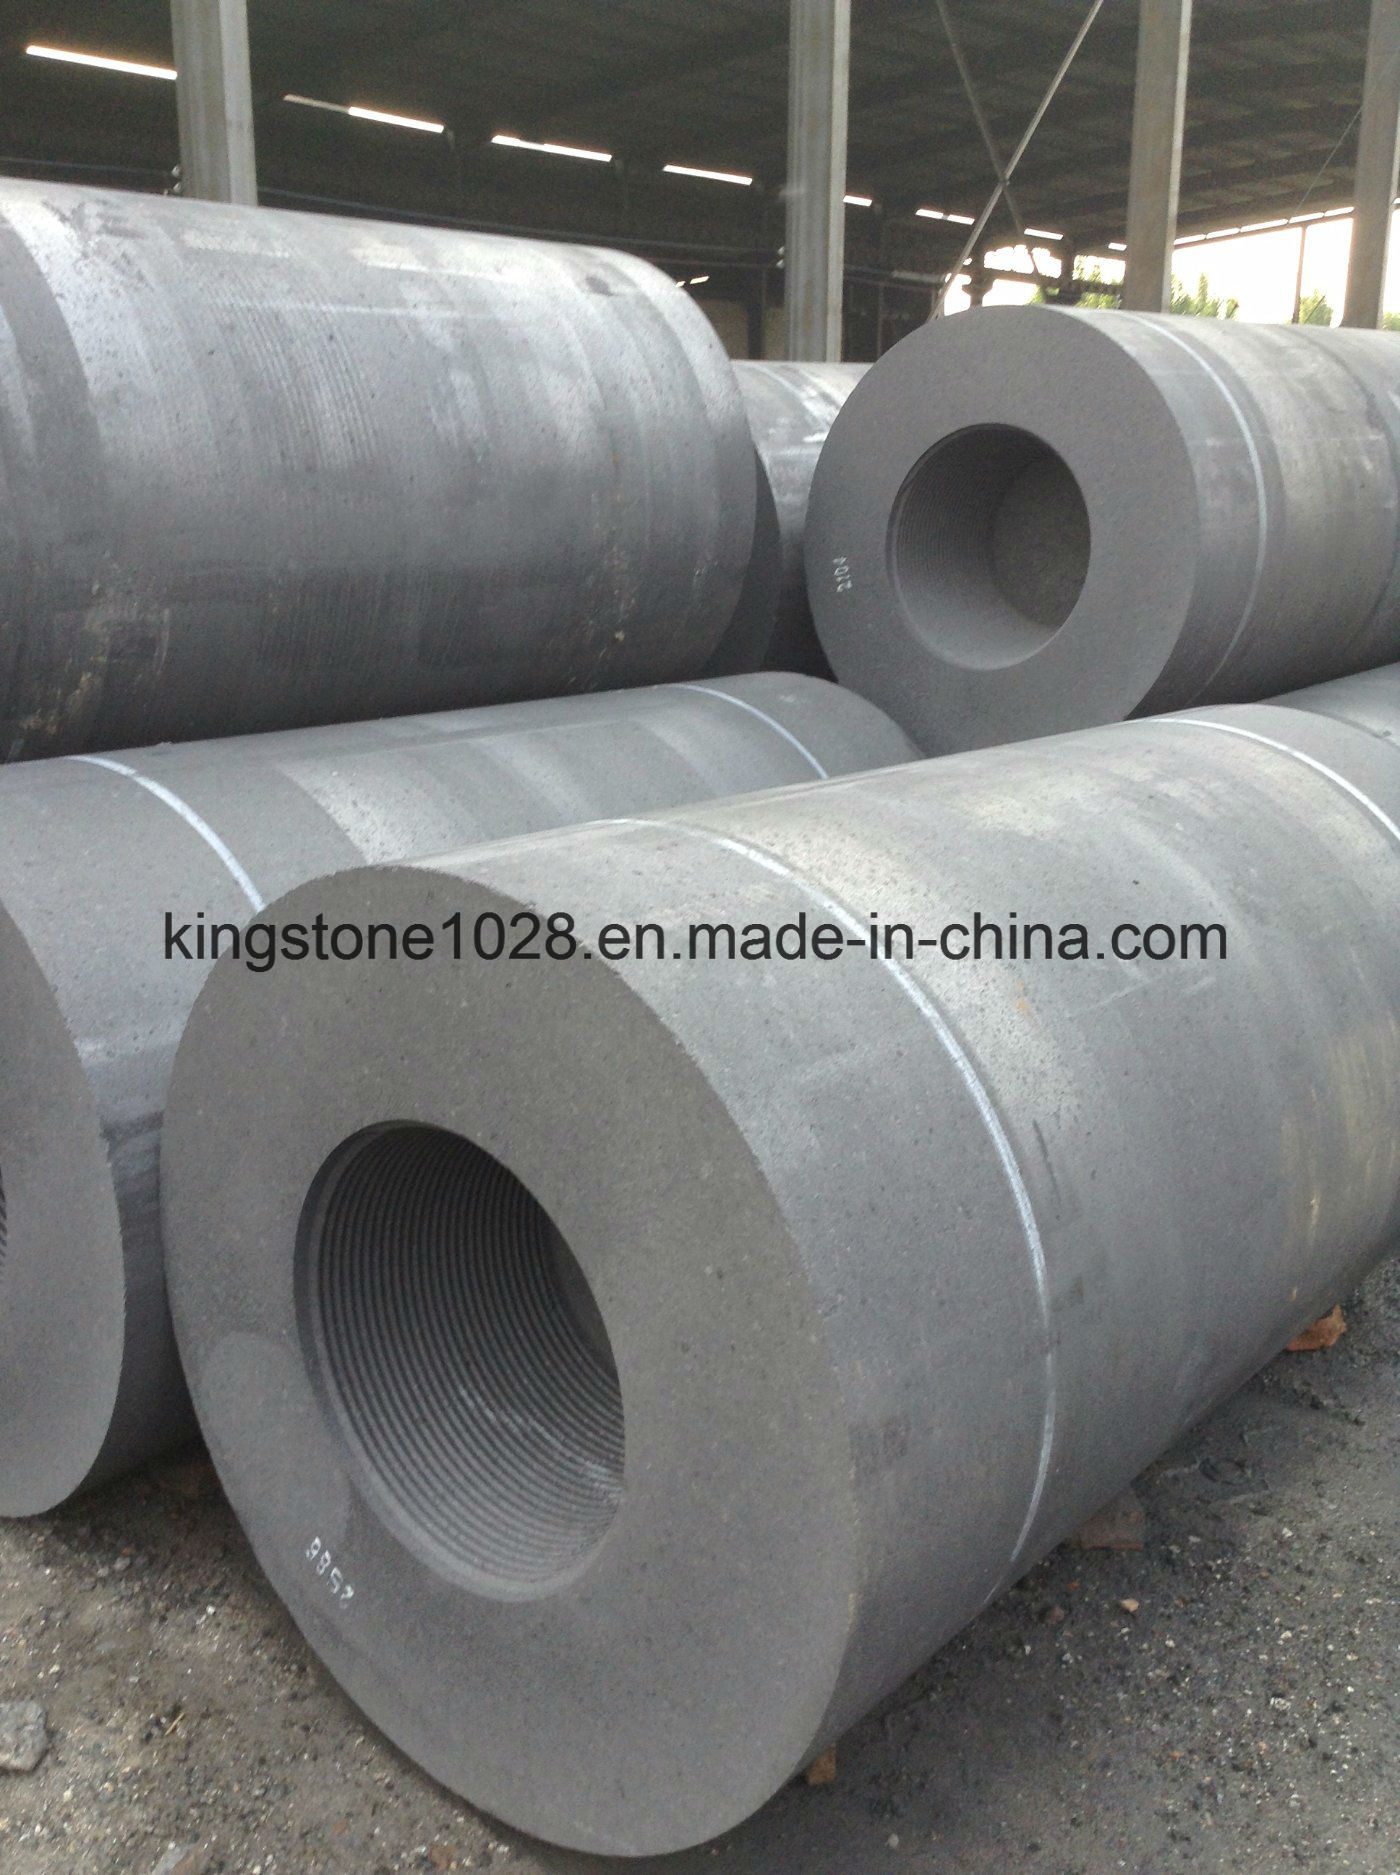 High Quality Graphite Electrode with Low Price